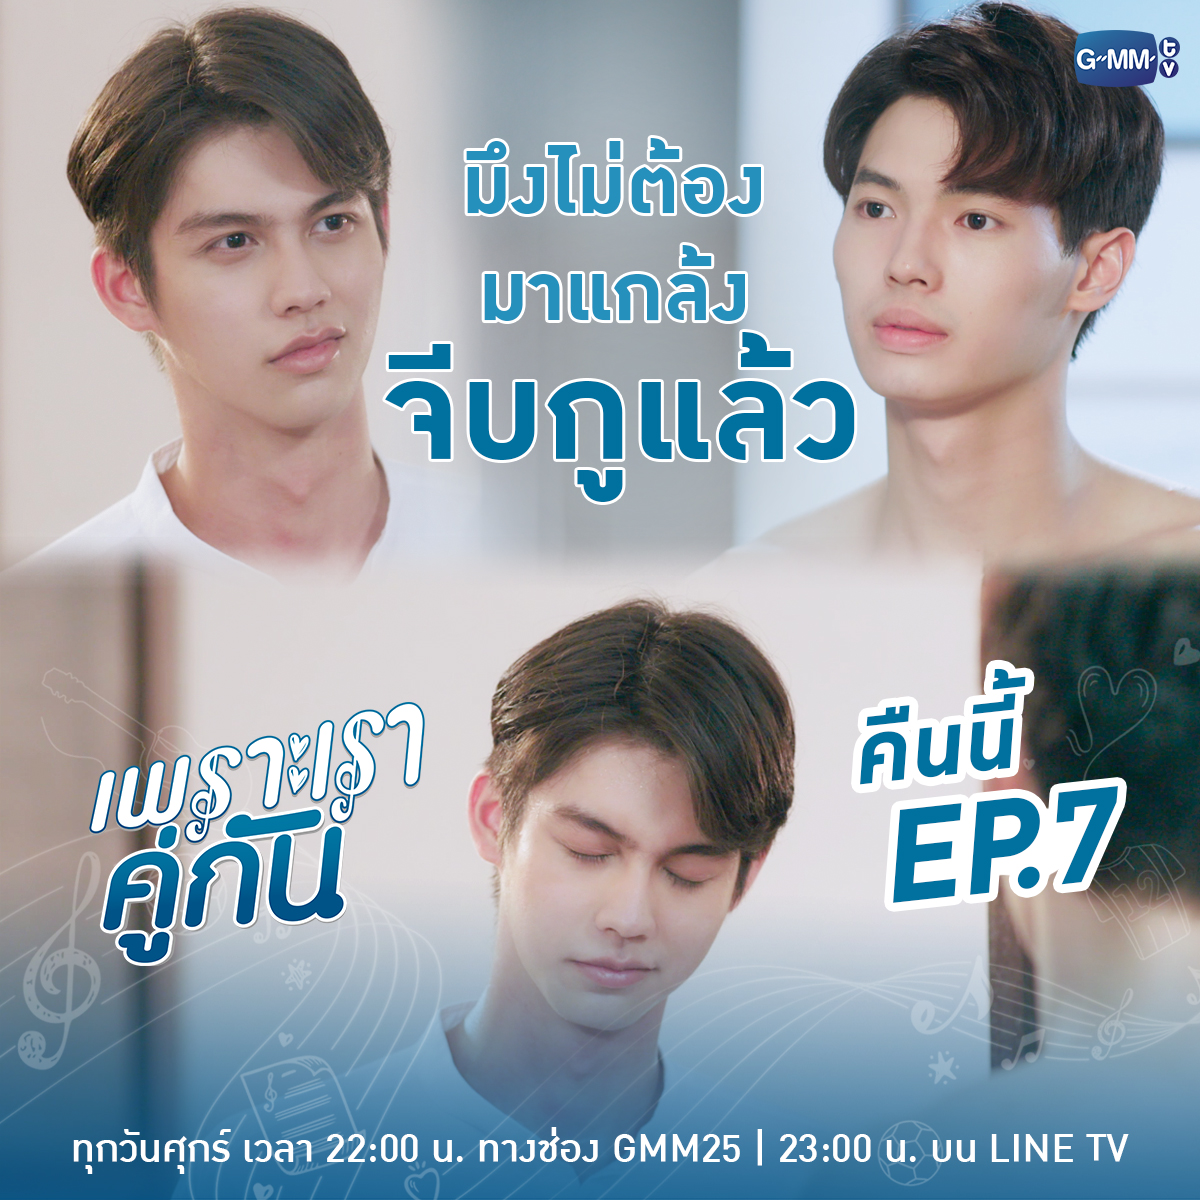 @GMMTV's photo on #คั่น�ูEP7